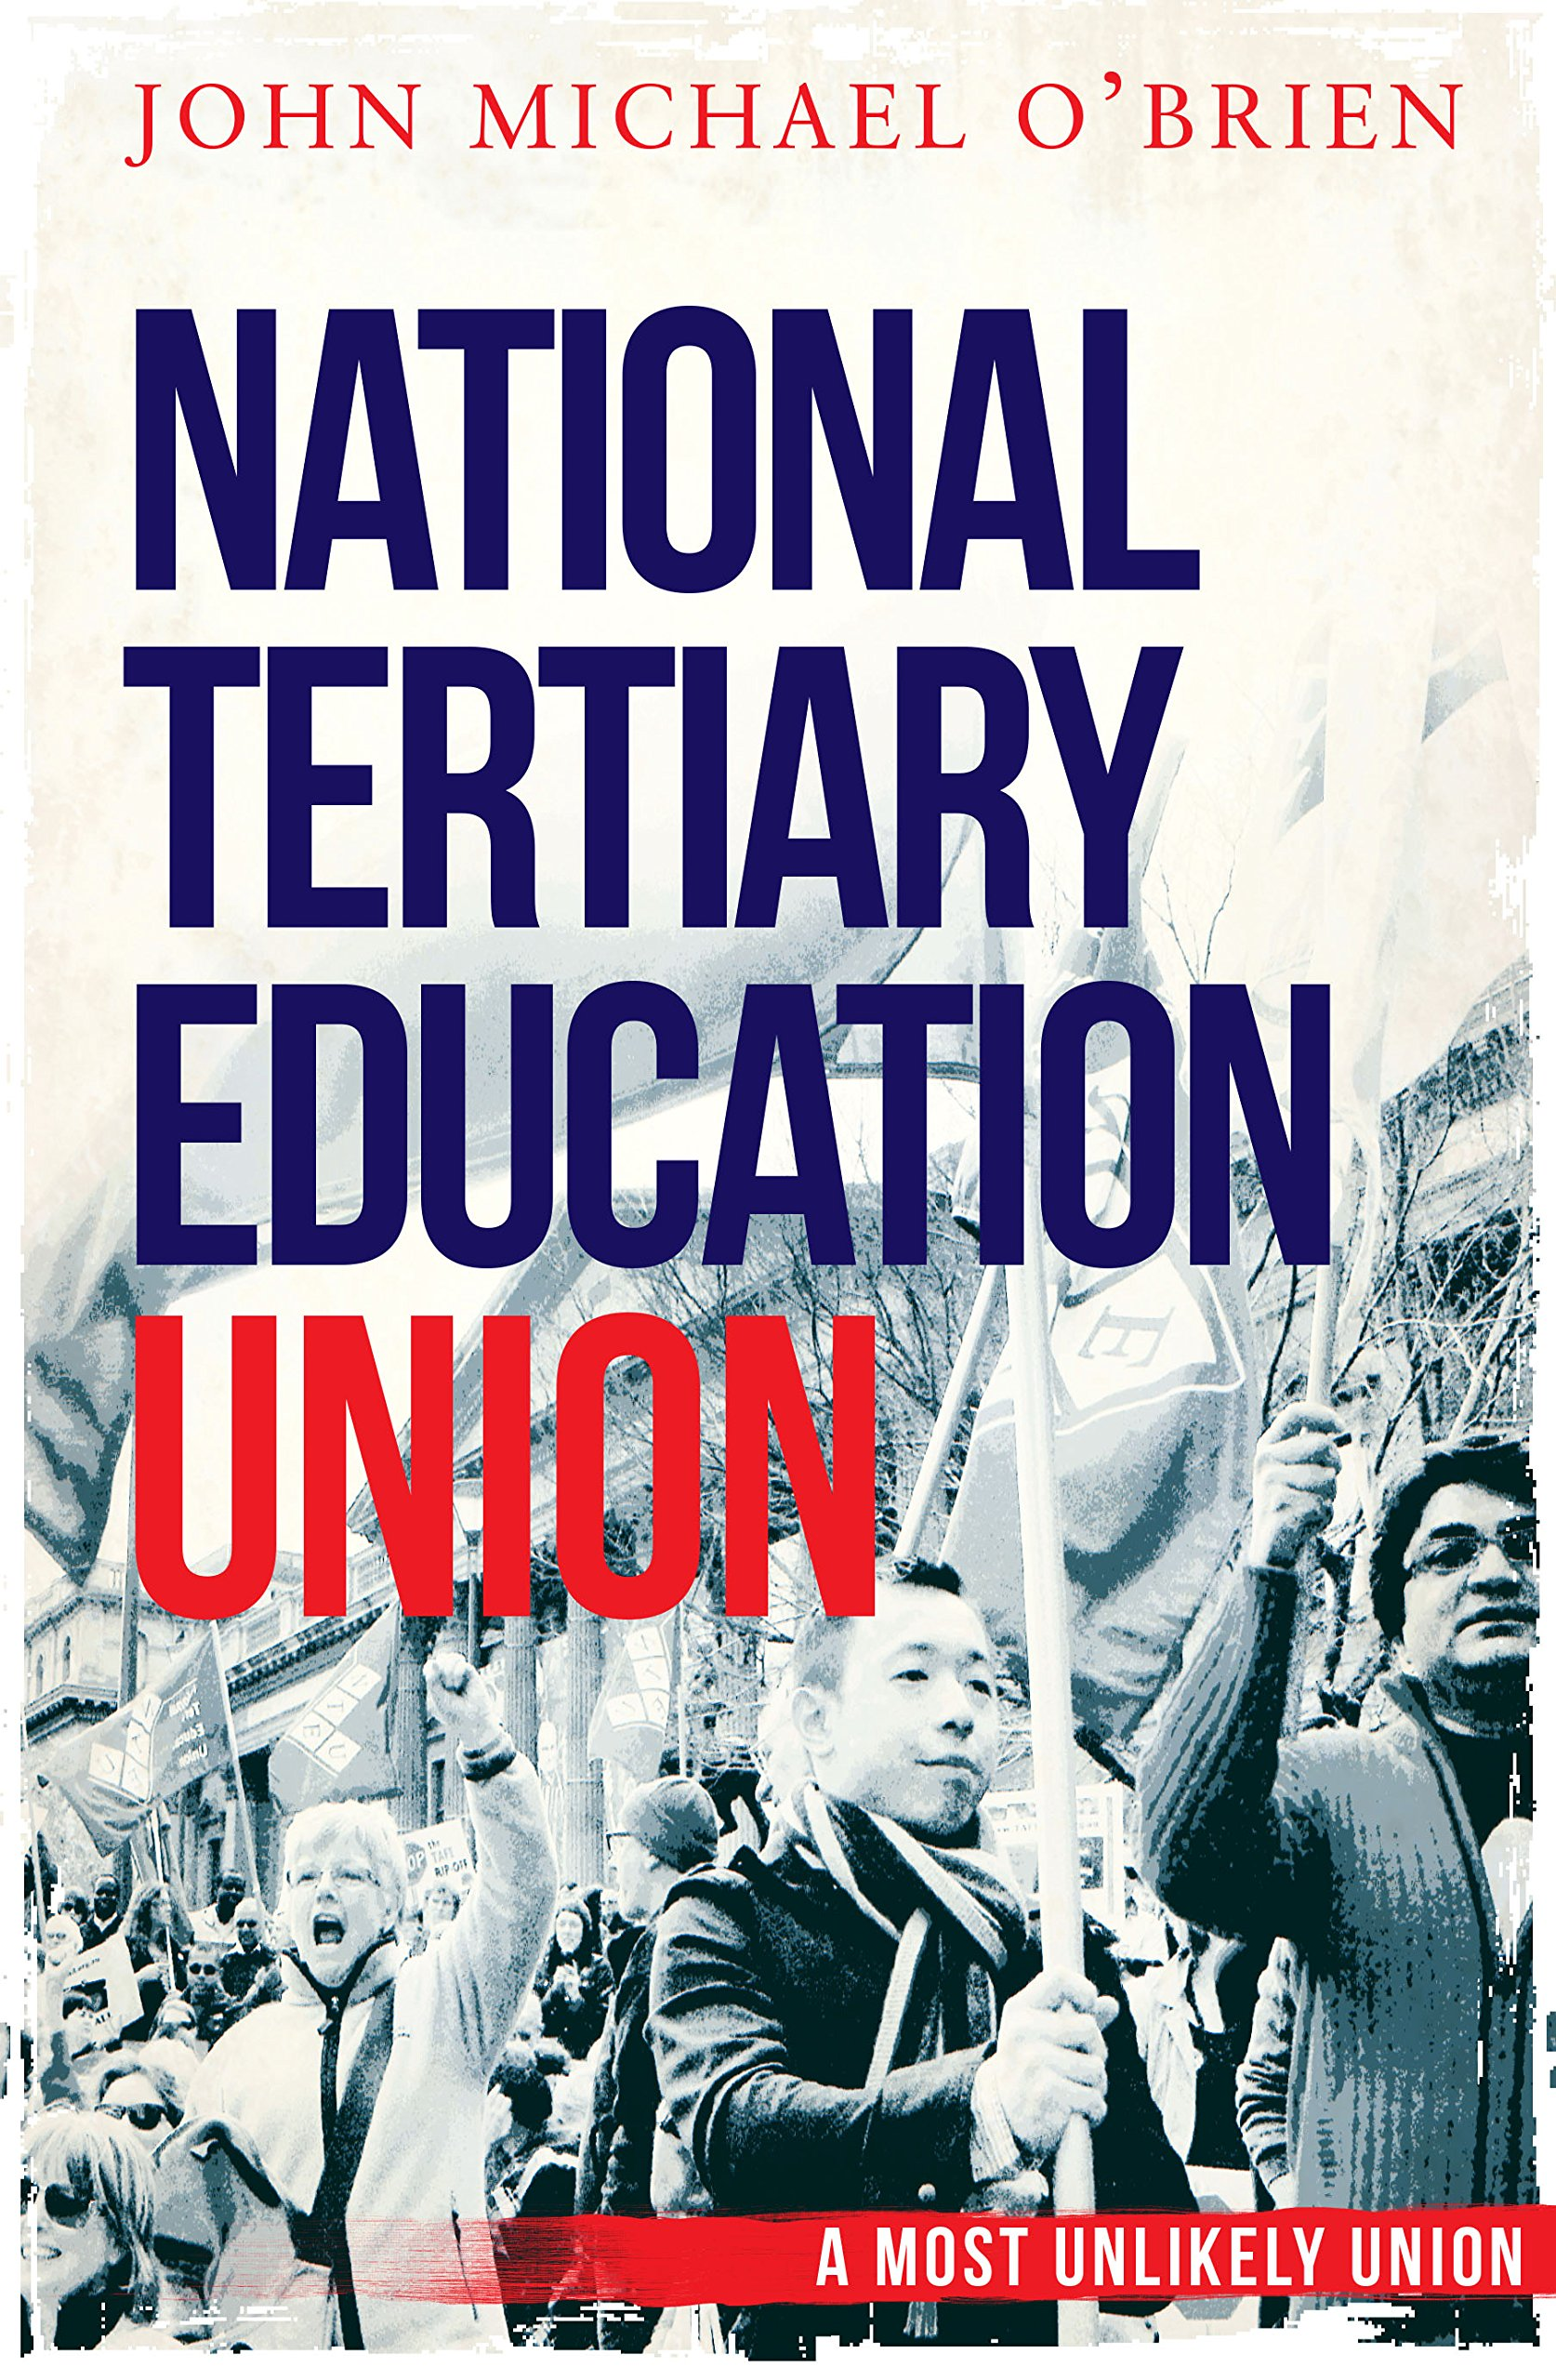 The National Tertiary Education Union A Most Unlikely Union O Brien John 9781742234588 Amazon Com Books